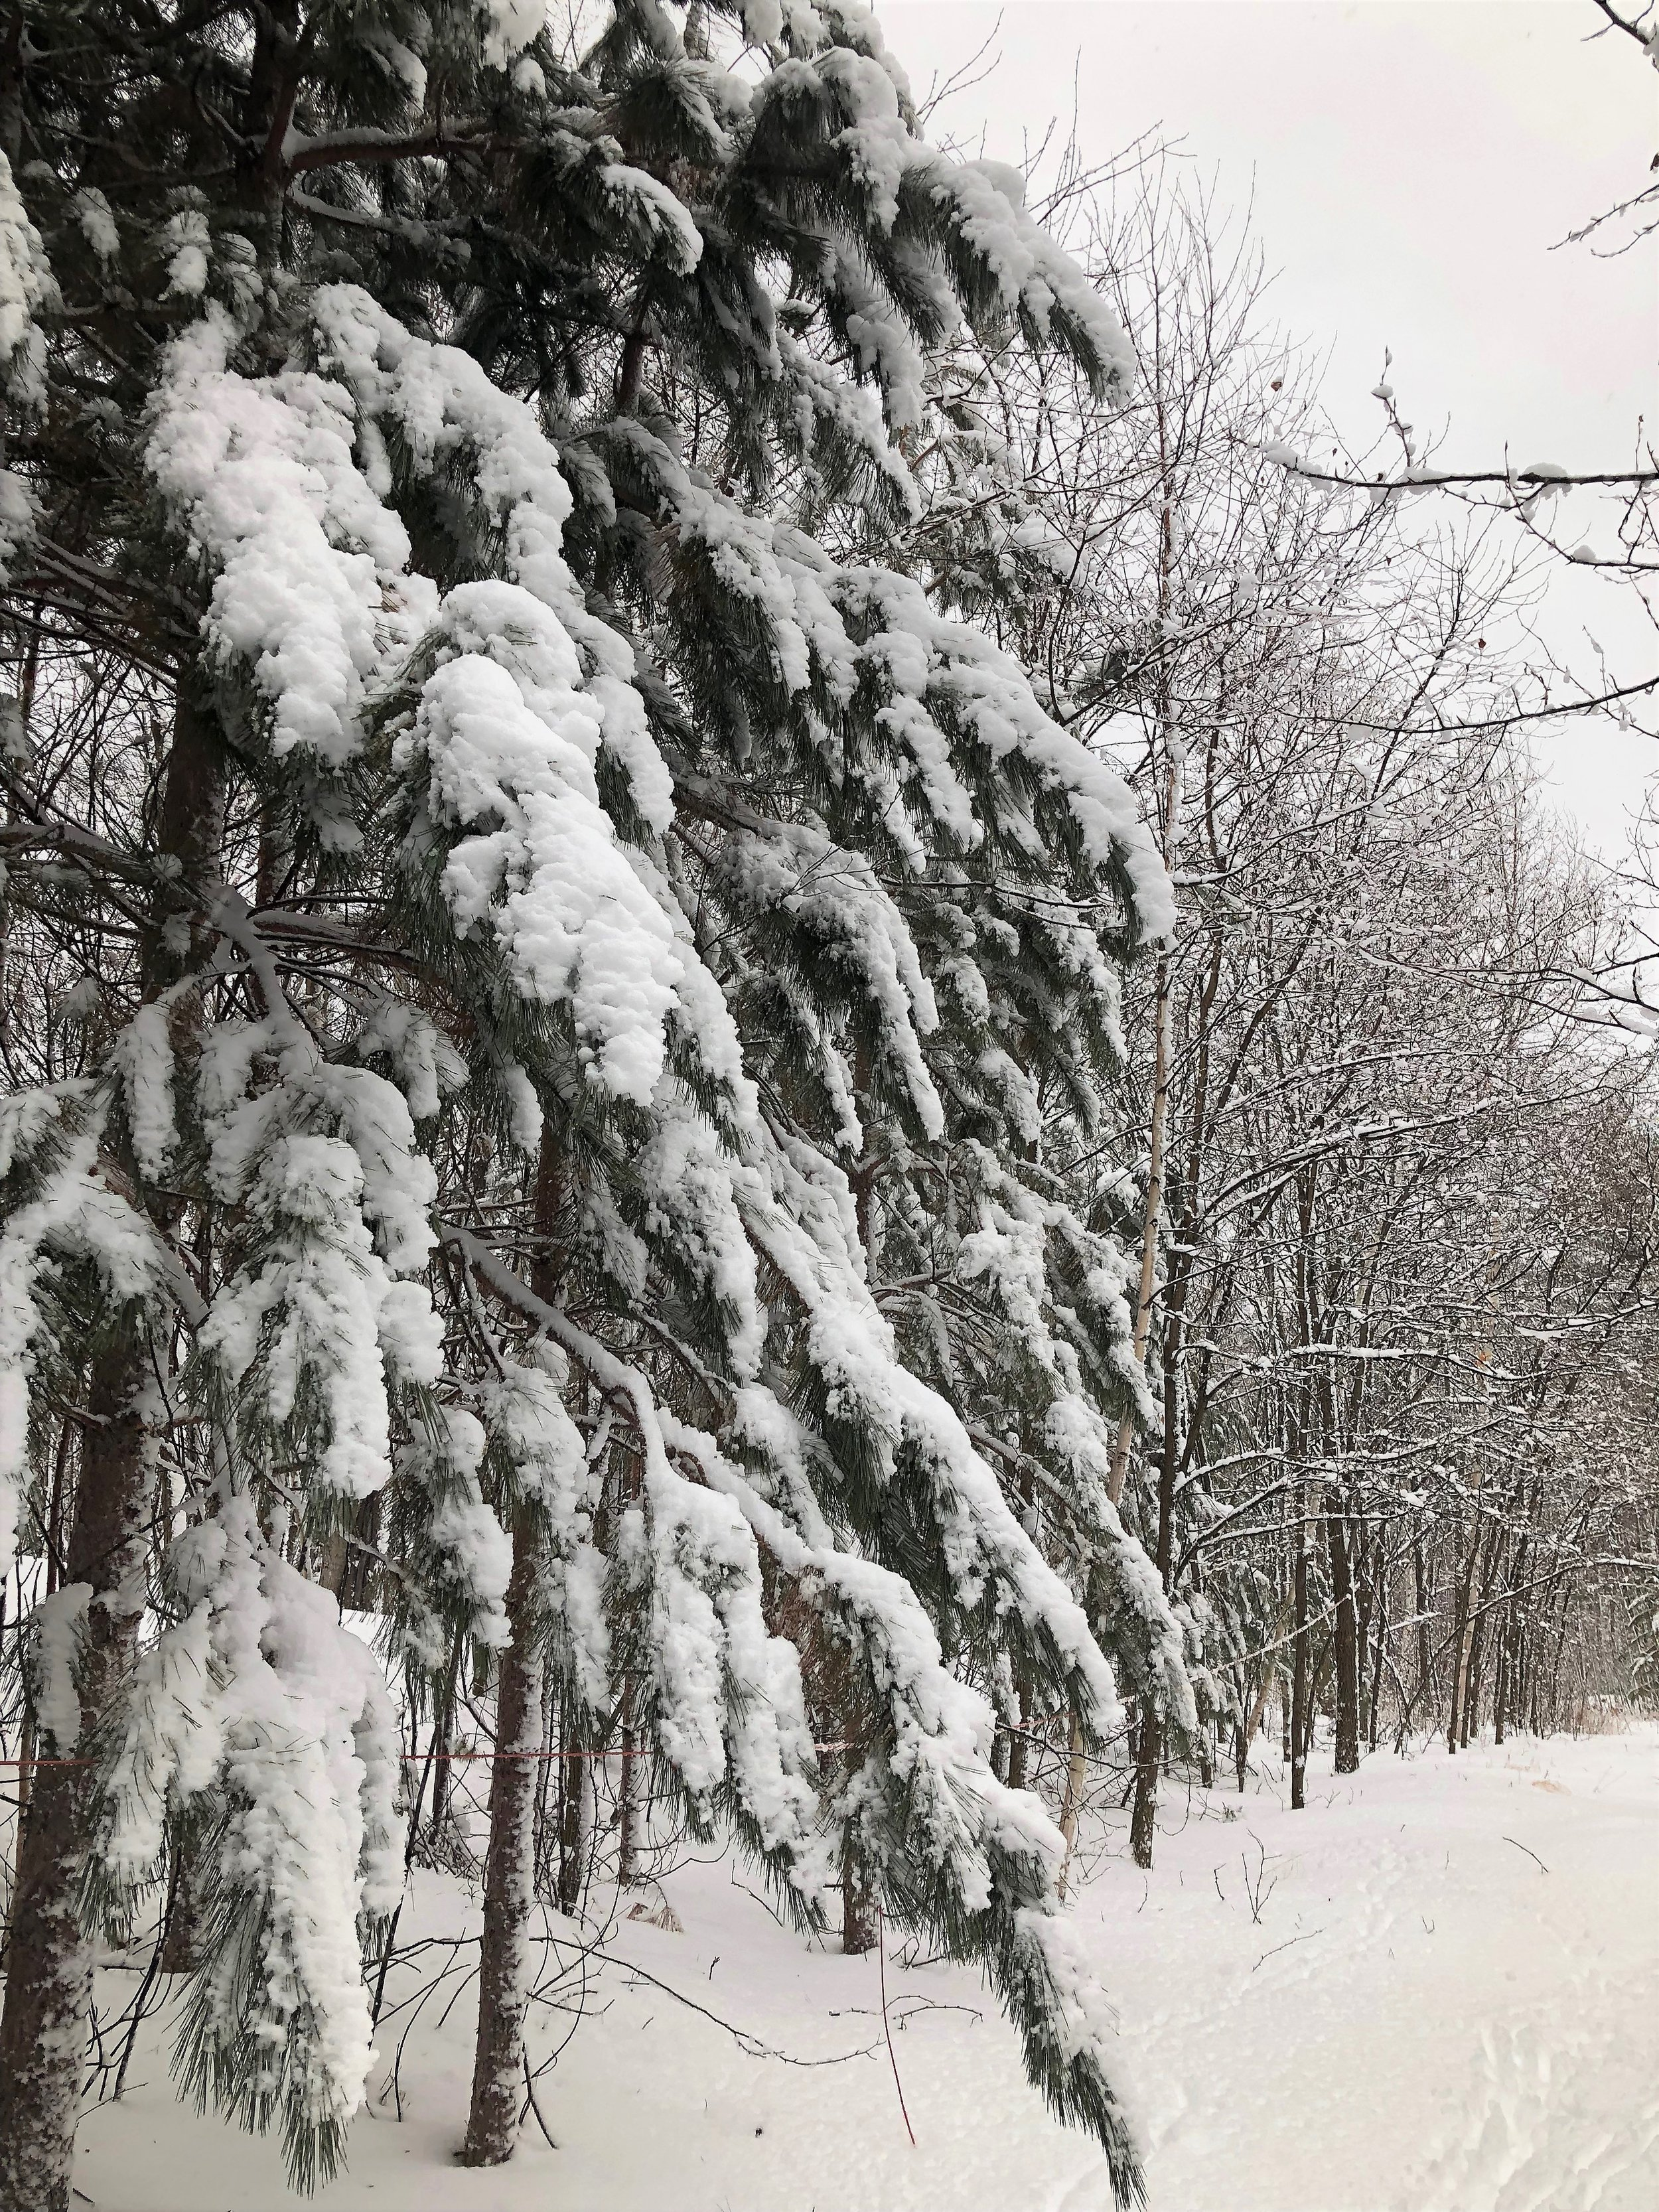 The winter woods around my tiny house in Marquette.